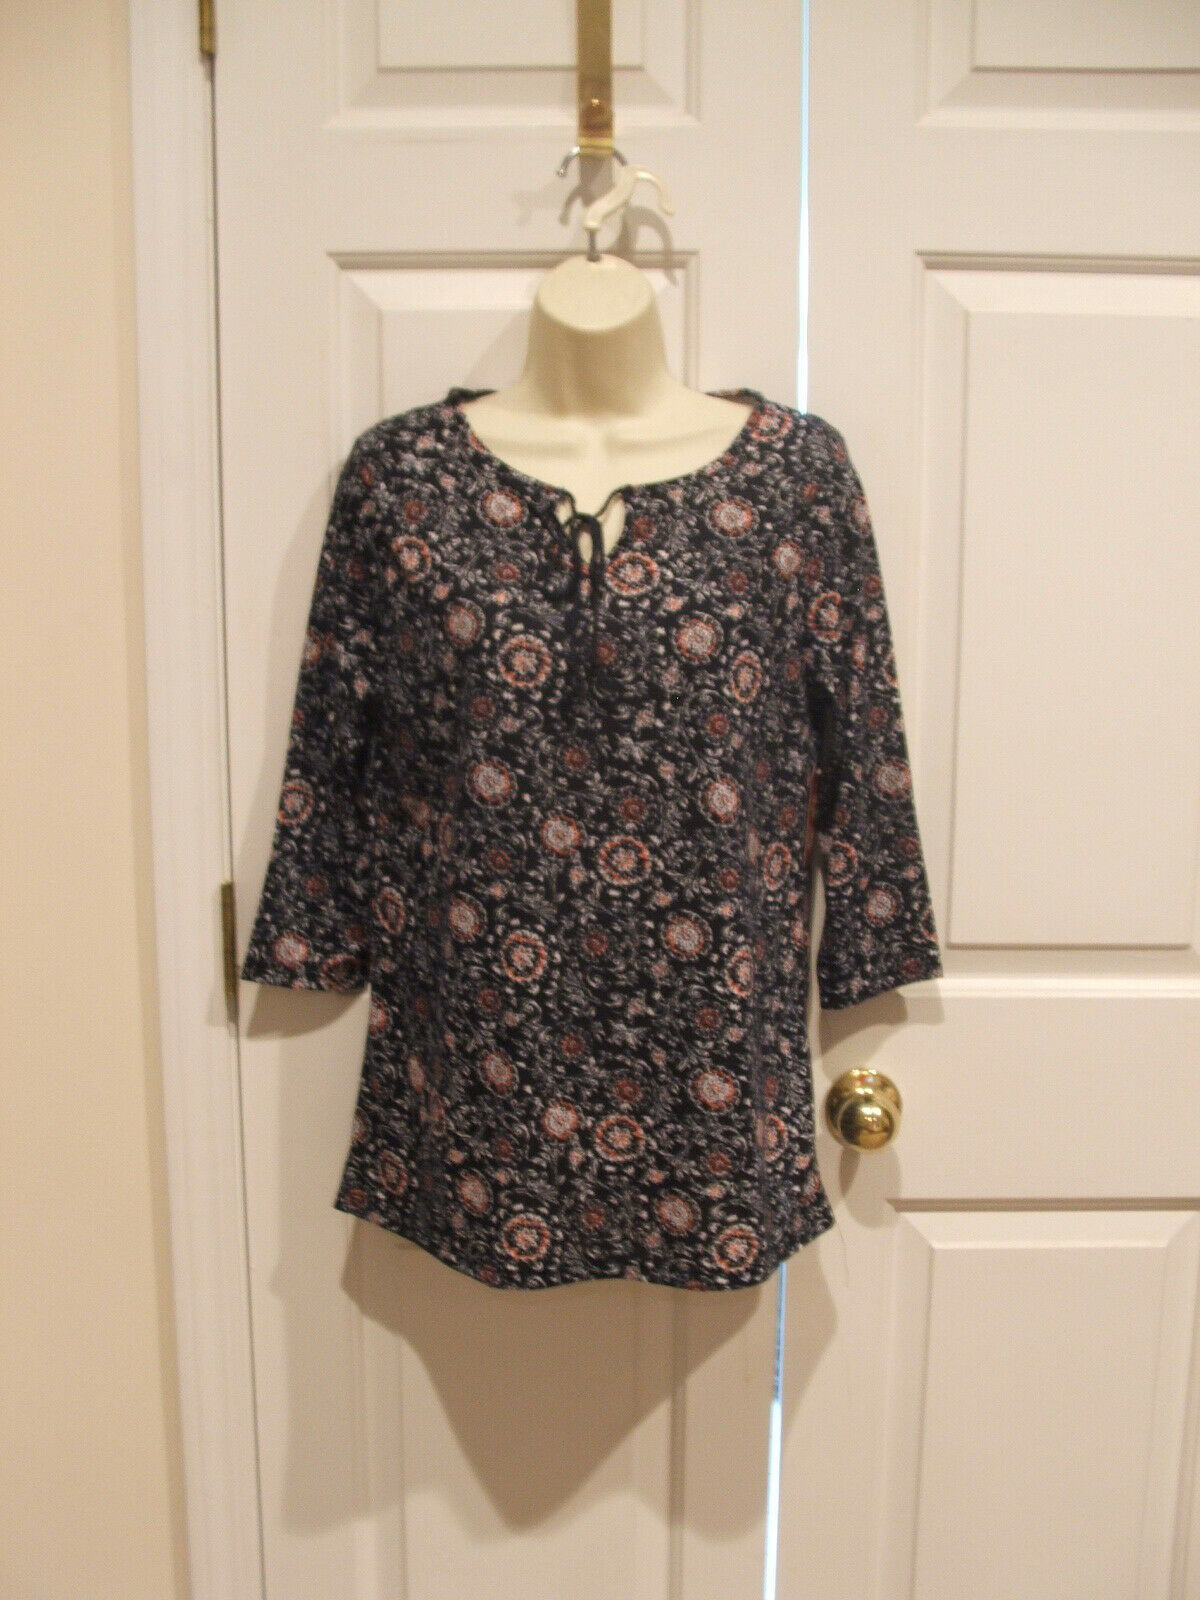 NWT FADED GLORY NAVY PRINT Long Sleeve Knit  TOP SIZE M 8-10